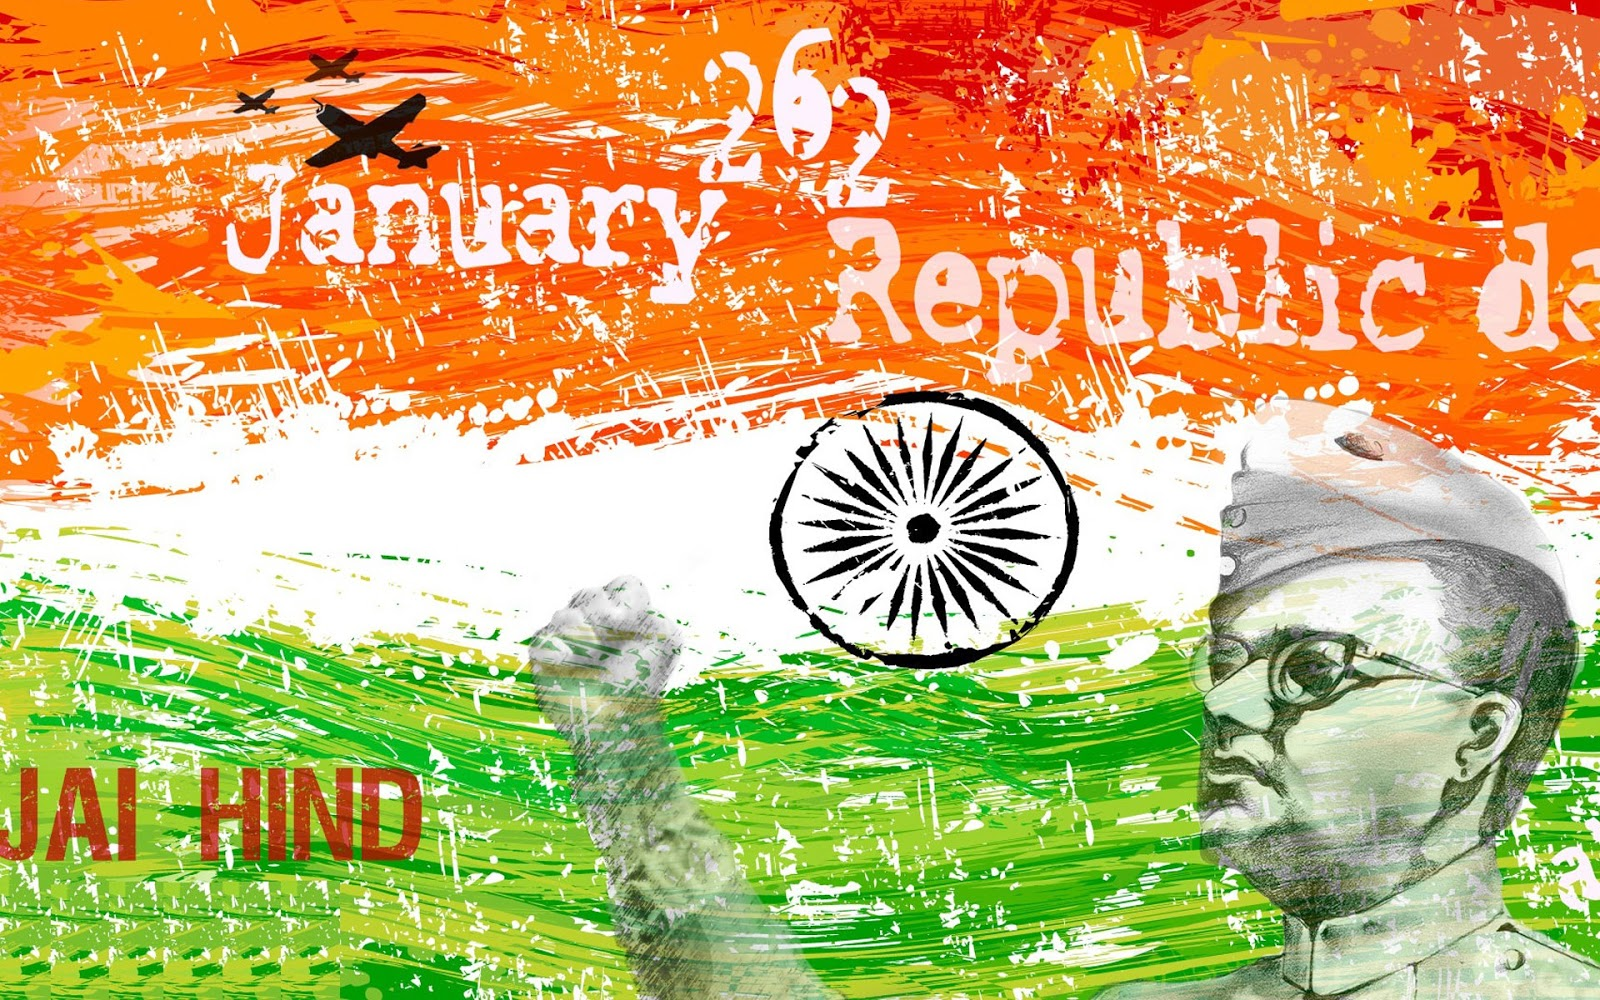 Wallpaper download republic day - Happy Republic Day 2017 Images Hd Pics Download Photos For 26th January 2016 Happy Republic Day 2017 Wishes Quotes Wallpapers Live Information